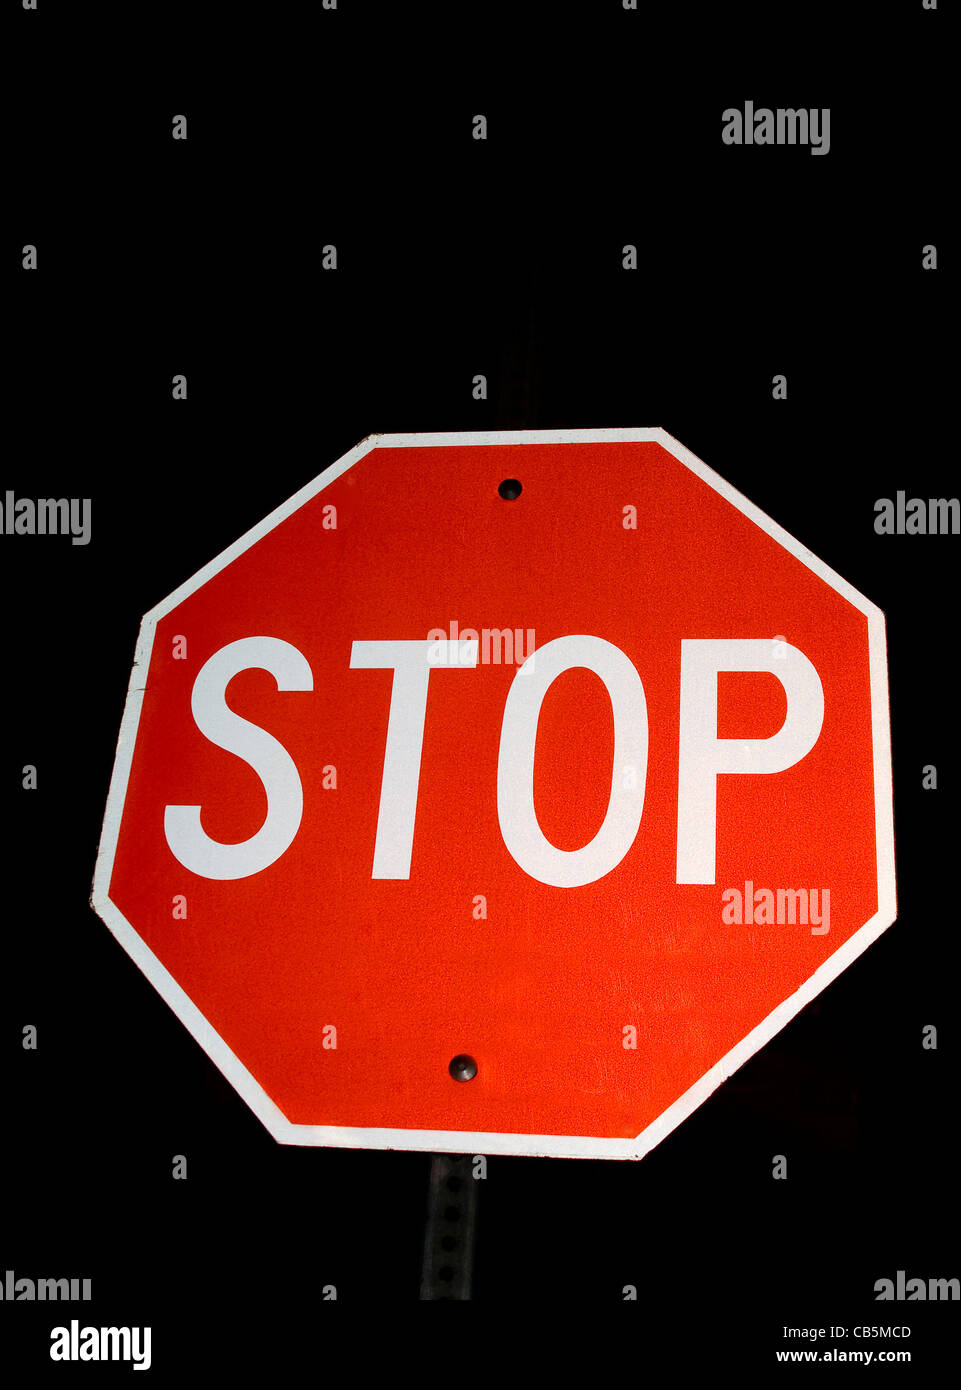 Bright Red Stop Sign at night - Stock Image